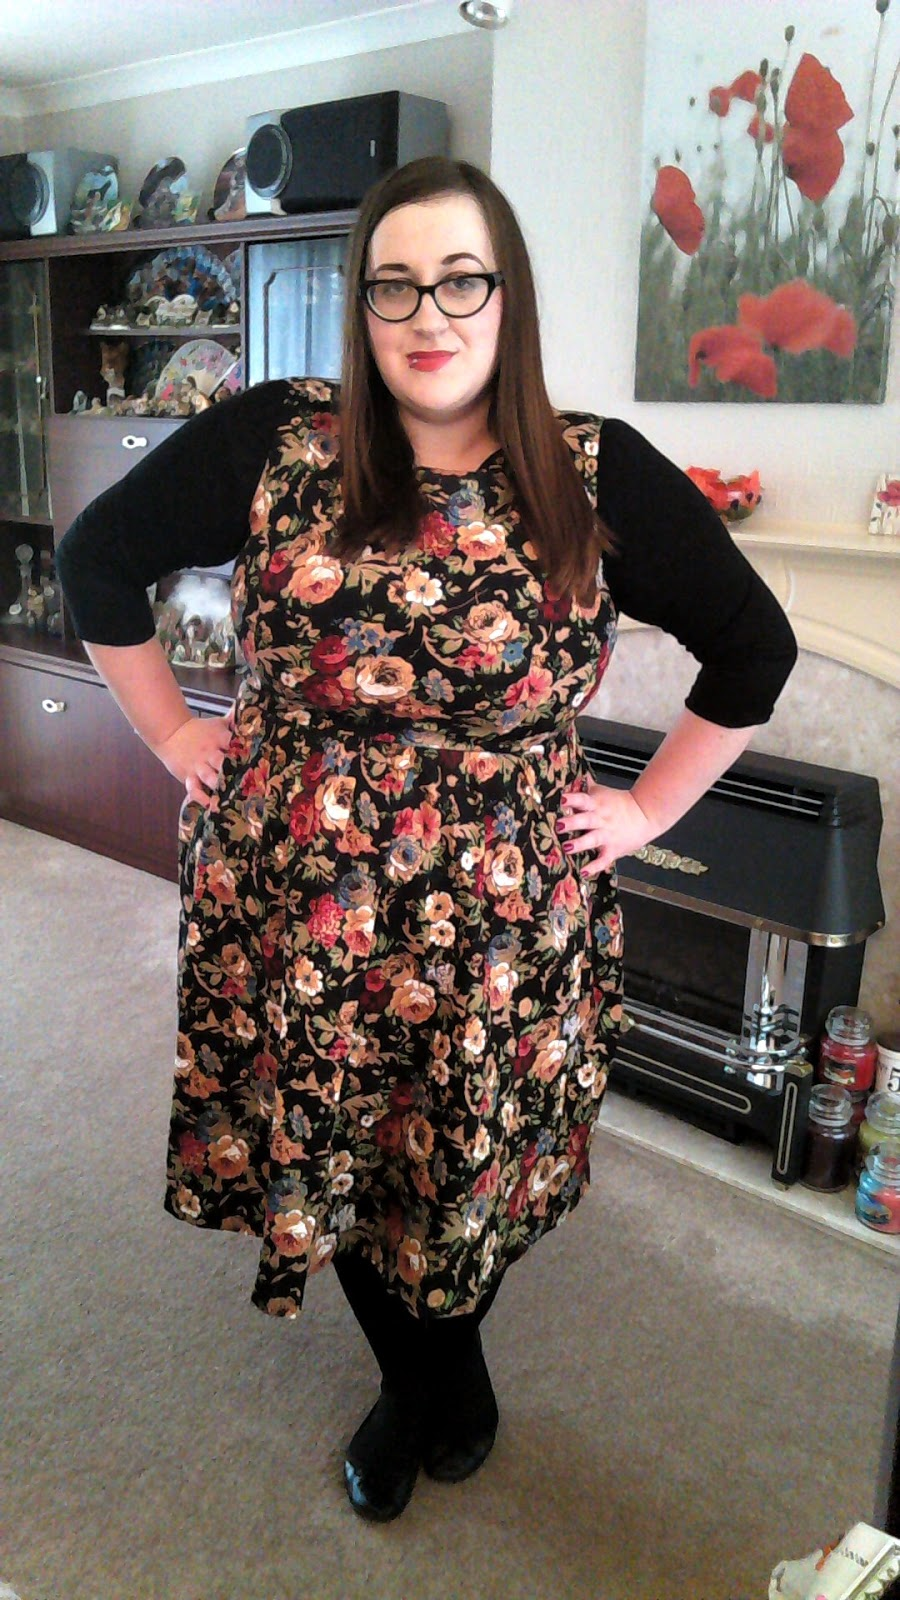 fat plus size girl bbw (size 20/22) wearing a Lindy Bop Audrey Hepburn floral dress and Wingz with ASOS Curve tights